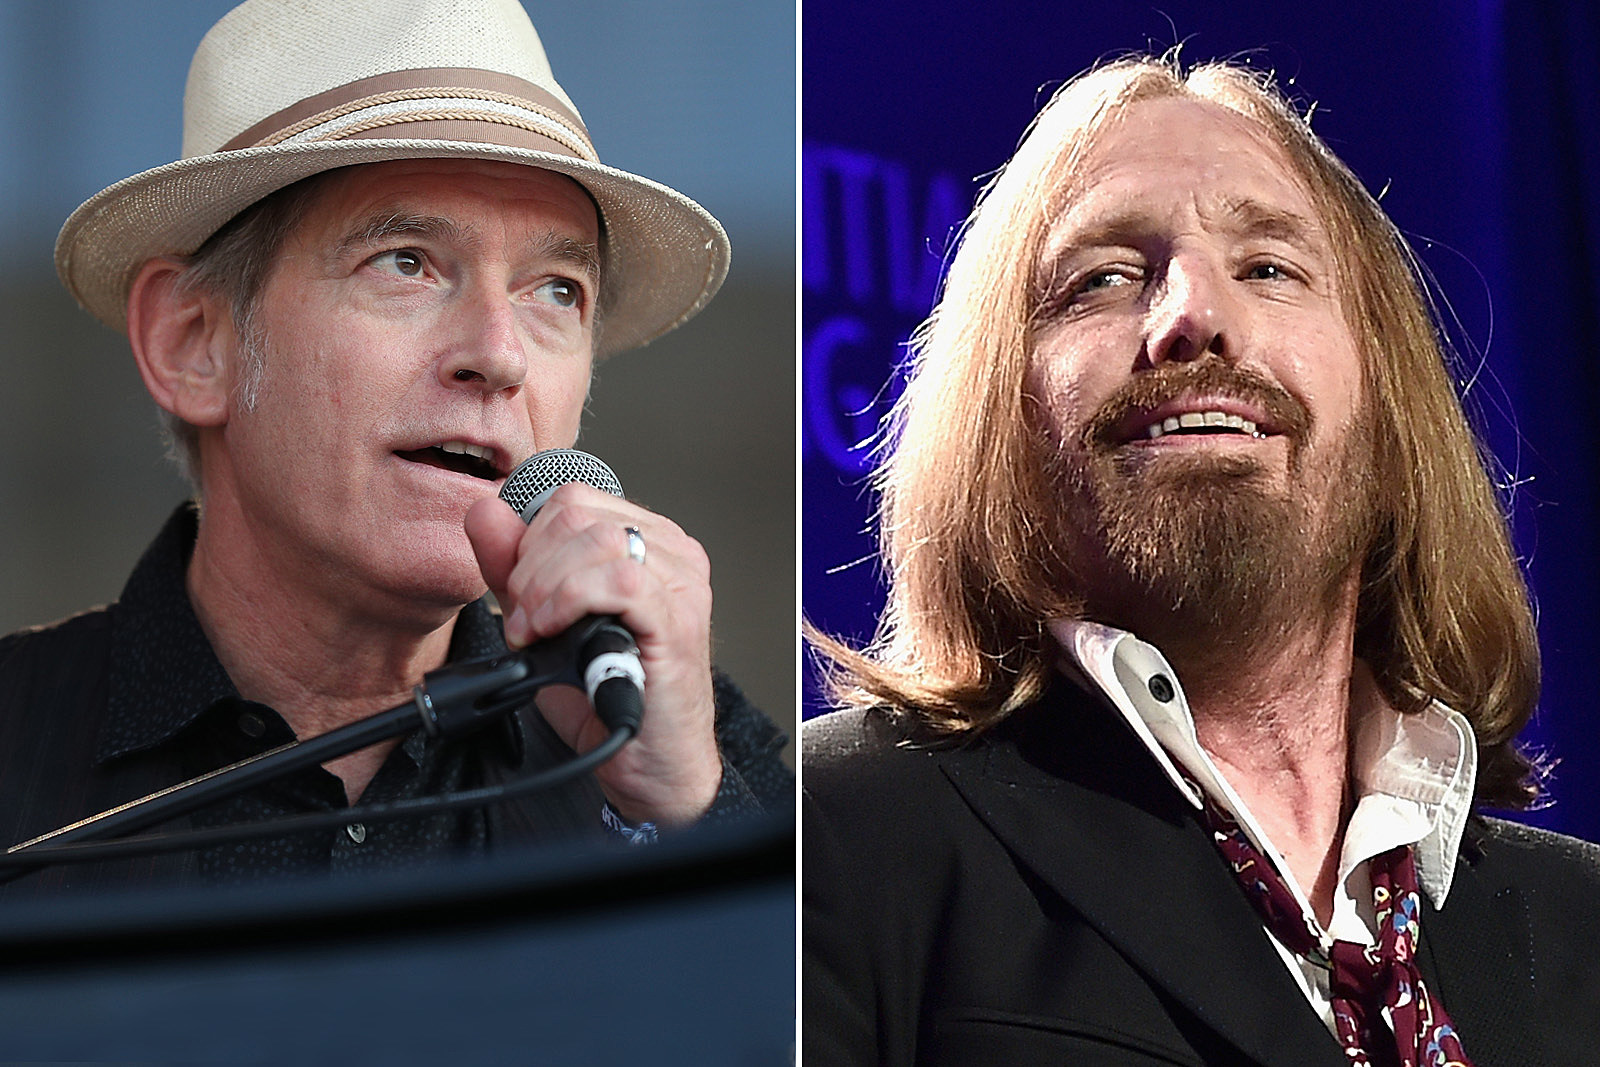 How Heartbreakers' Benmont Tench Survived Tom Petty's Death